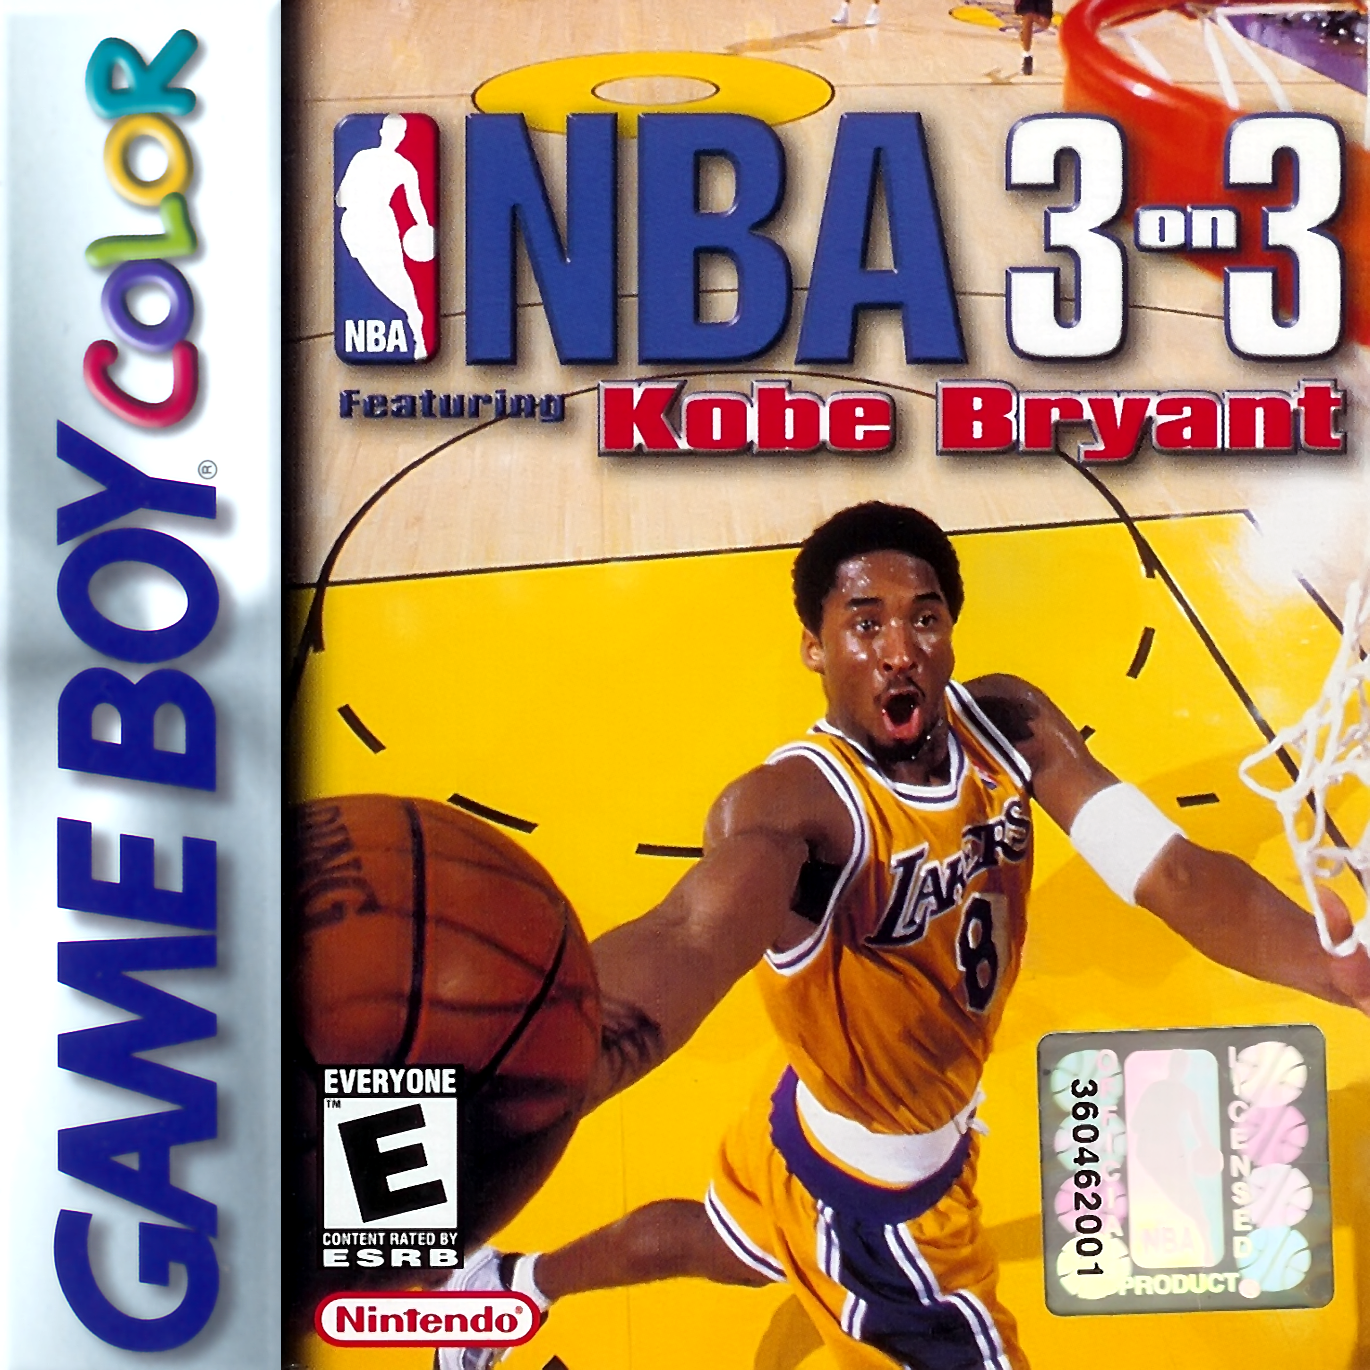 NBA 3 on 3 featuring Kobe Bryant Nintendo Game Boy Color cover artwork